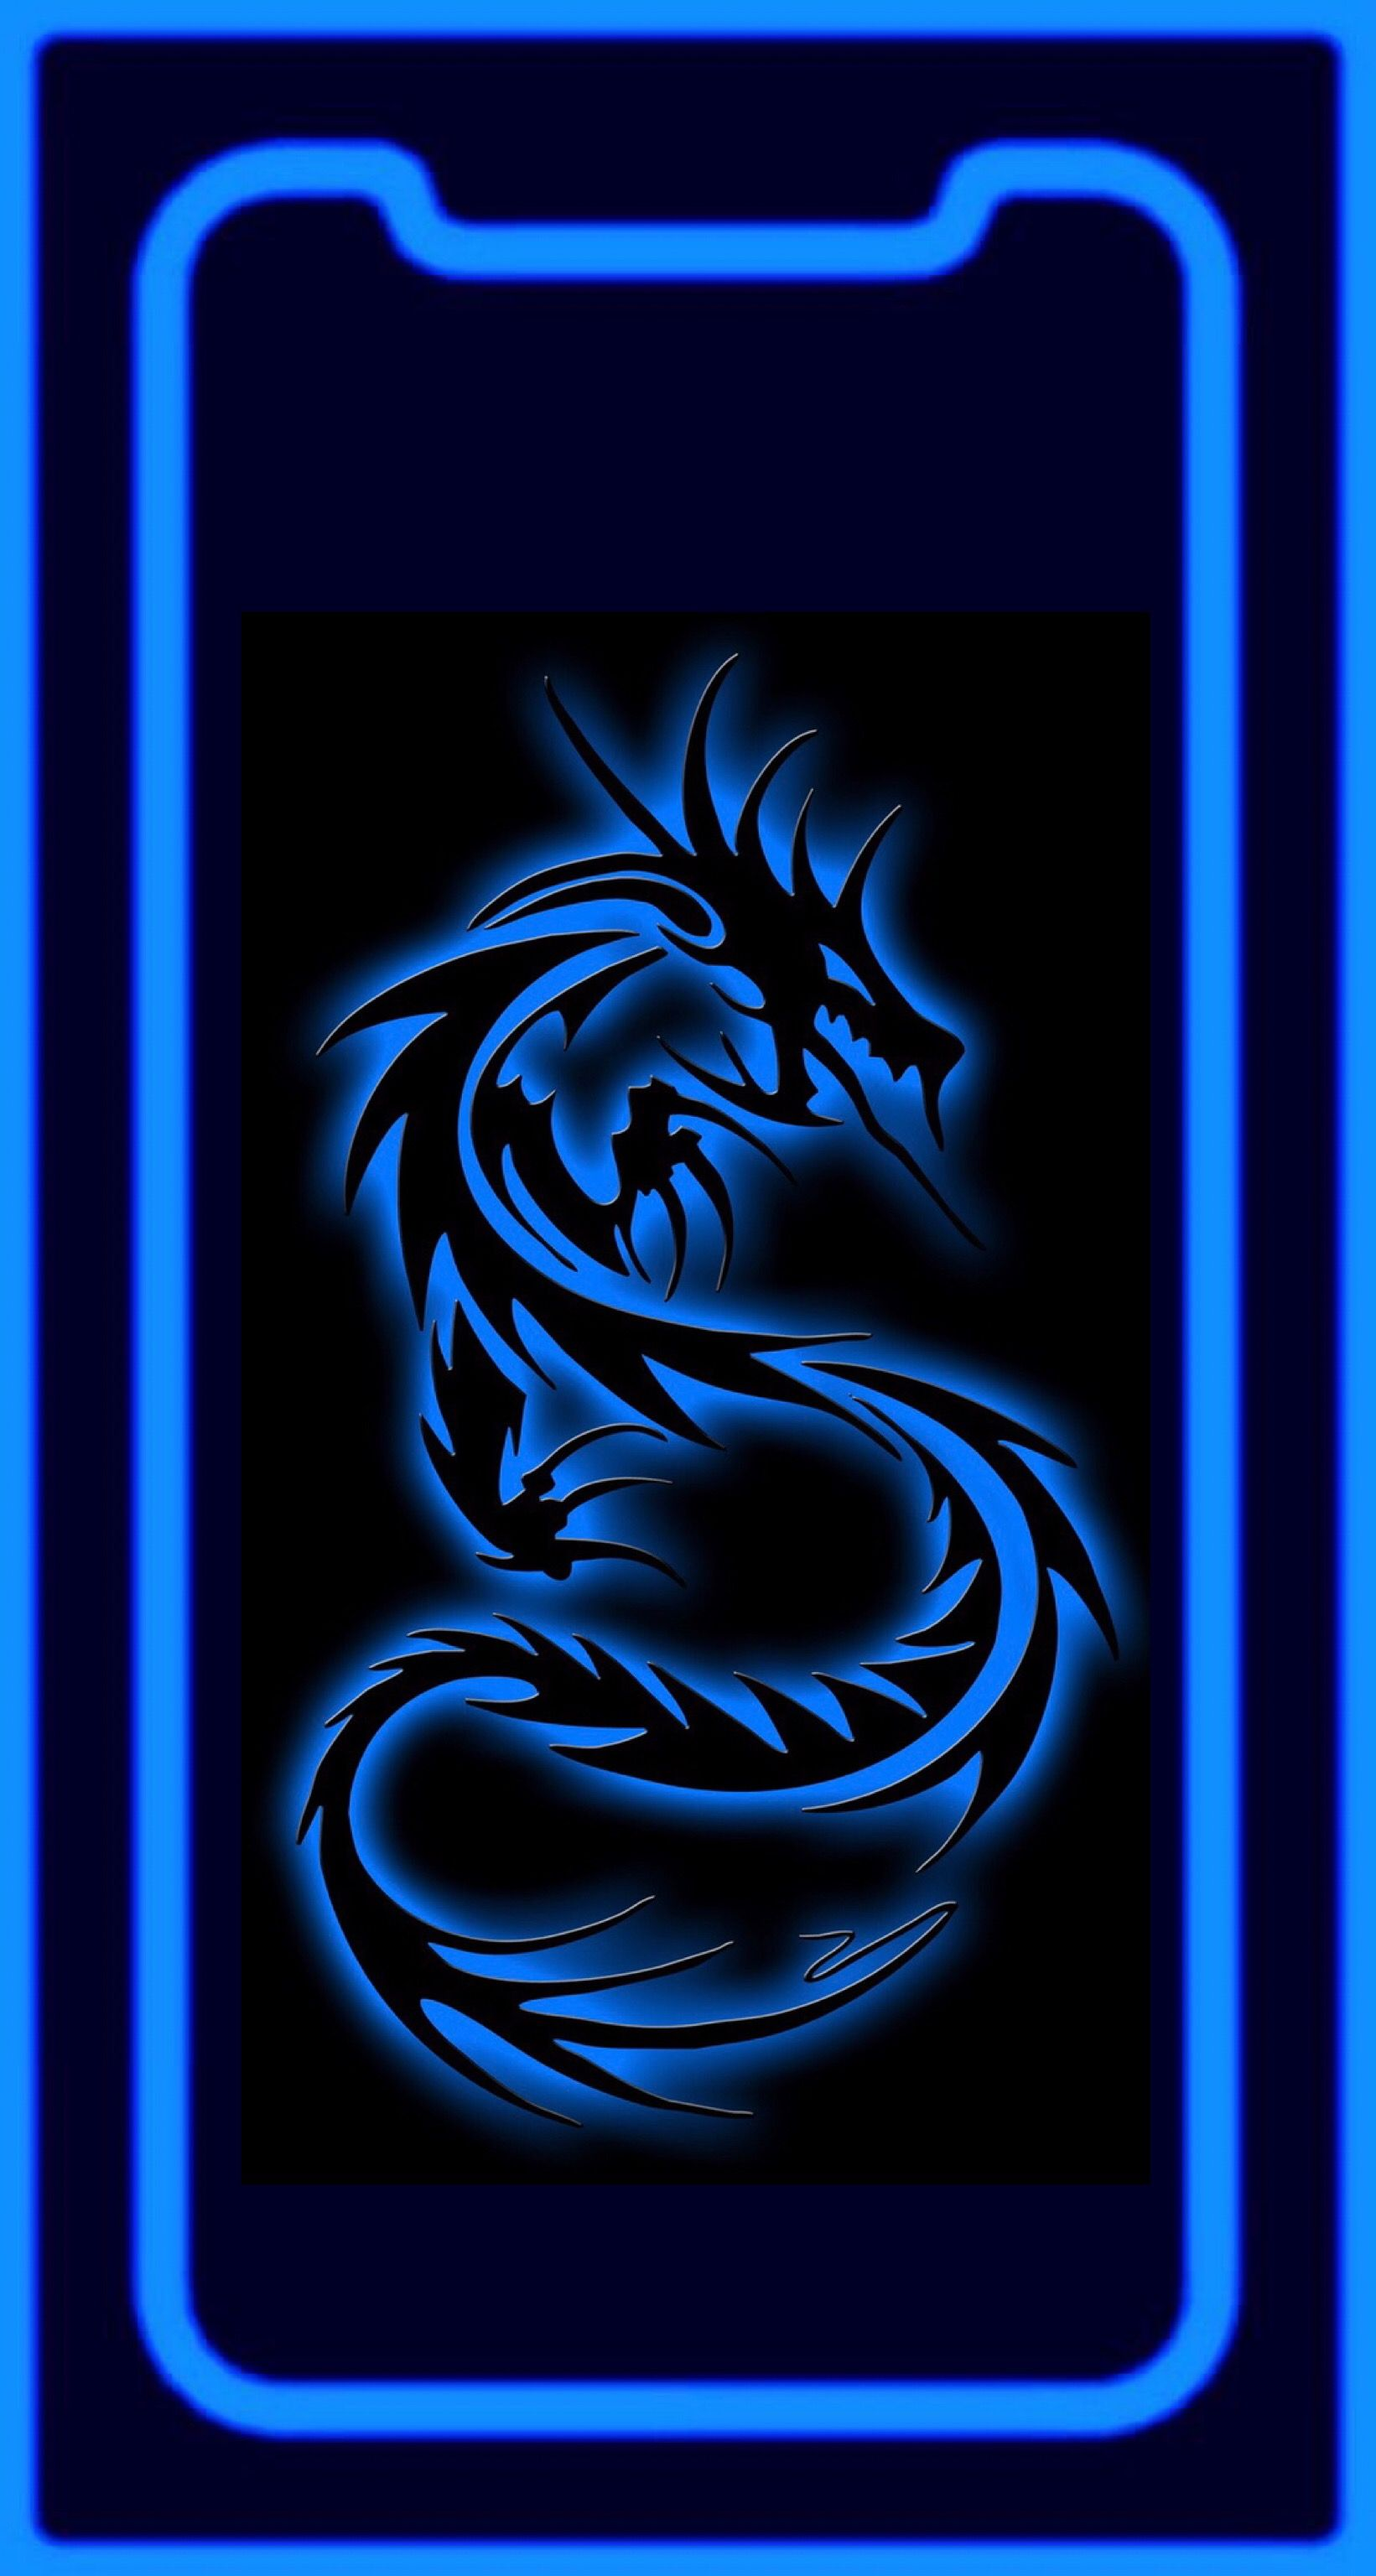 Wallpaper Iphone X Blue Dragon Apple Wallpaper Iphone Black